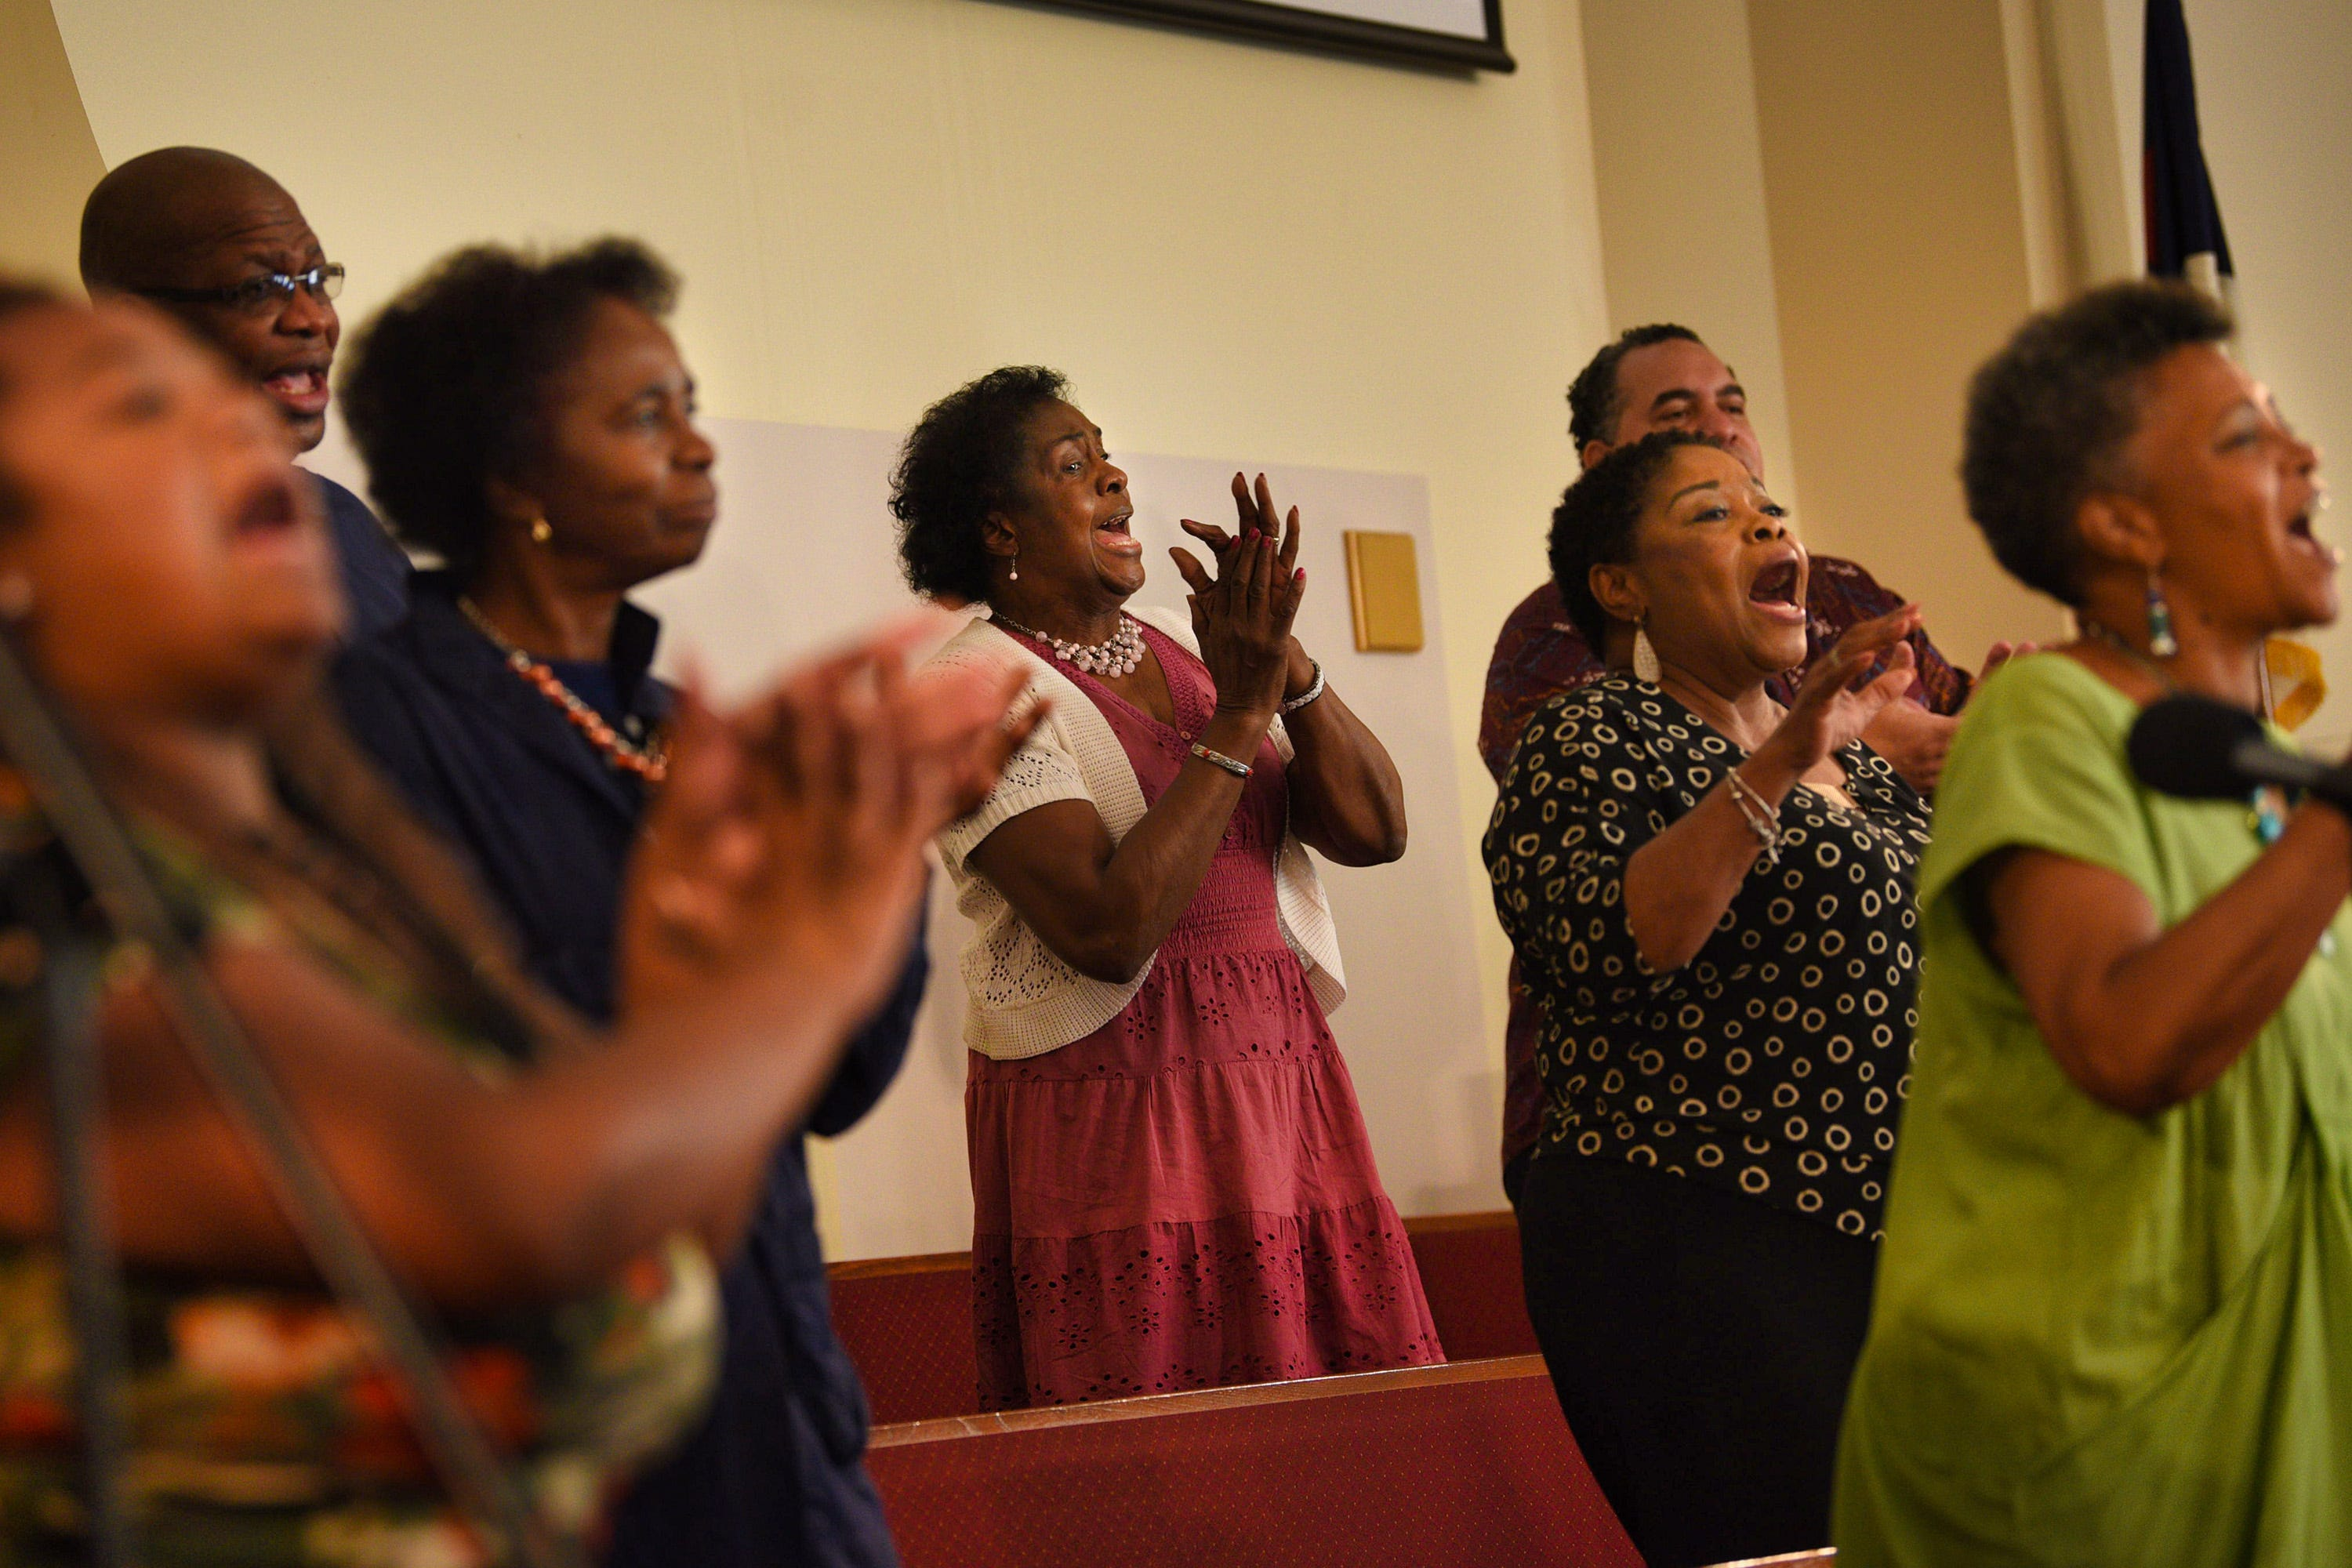 Mt. Olive Baptist Church choir members are socially distanced as they sing during the Sunday service at Mt. Olive Baptist Church In Hackensack on 08/15/21.